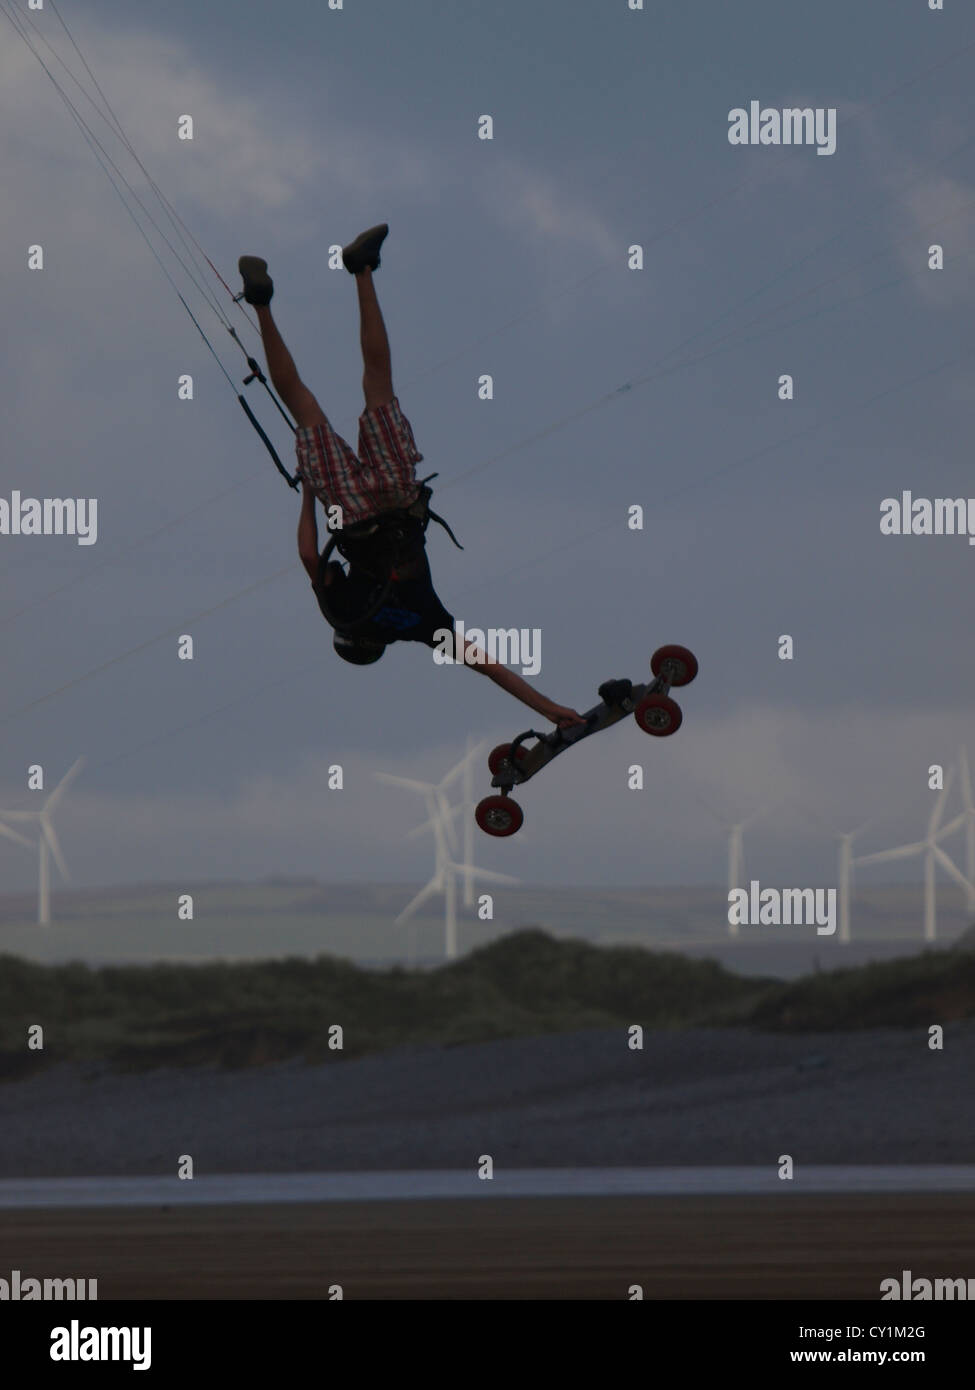 BKSA, British Kitesurfing Associations, Westward Ho! 2012, Devon, UK Stock Photo